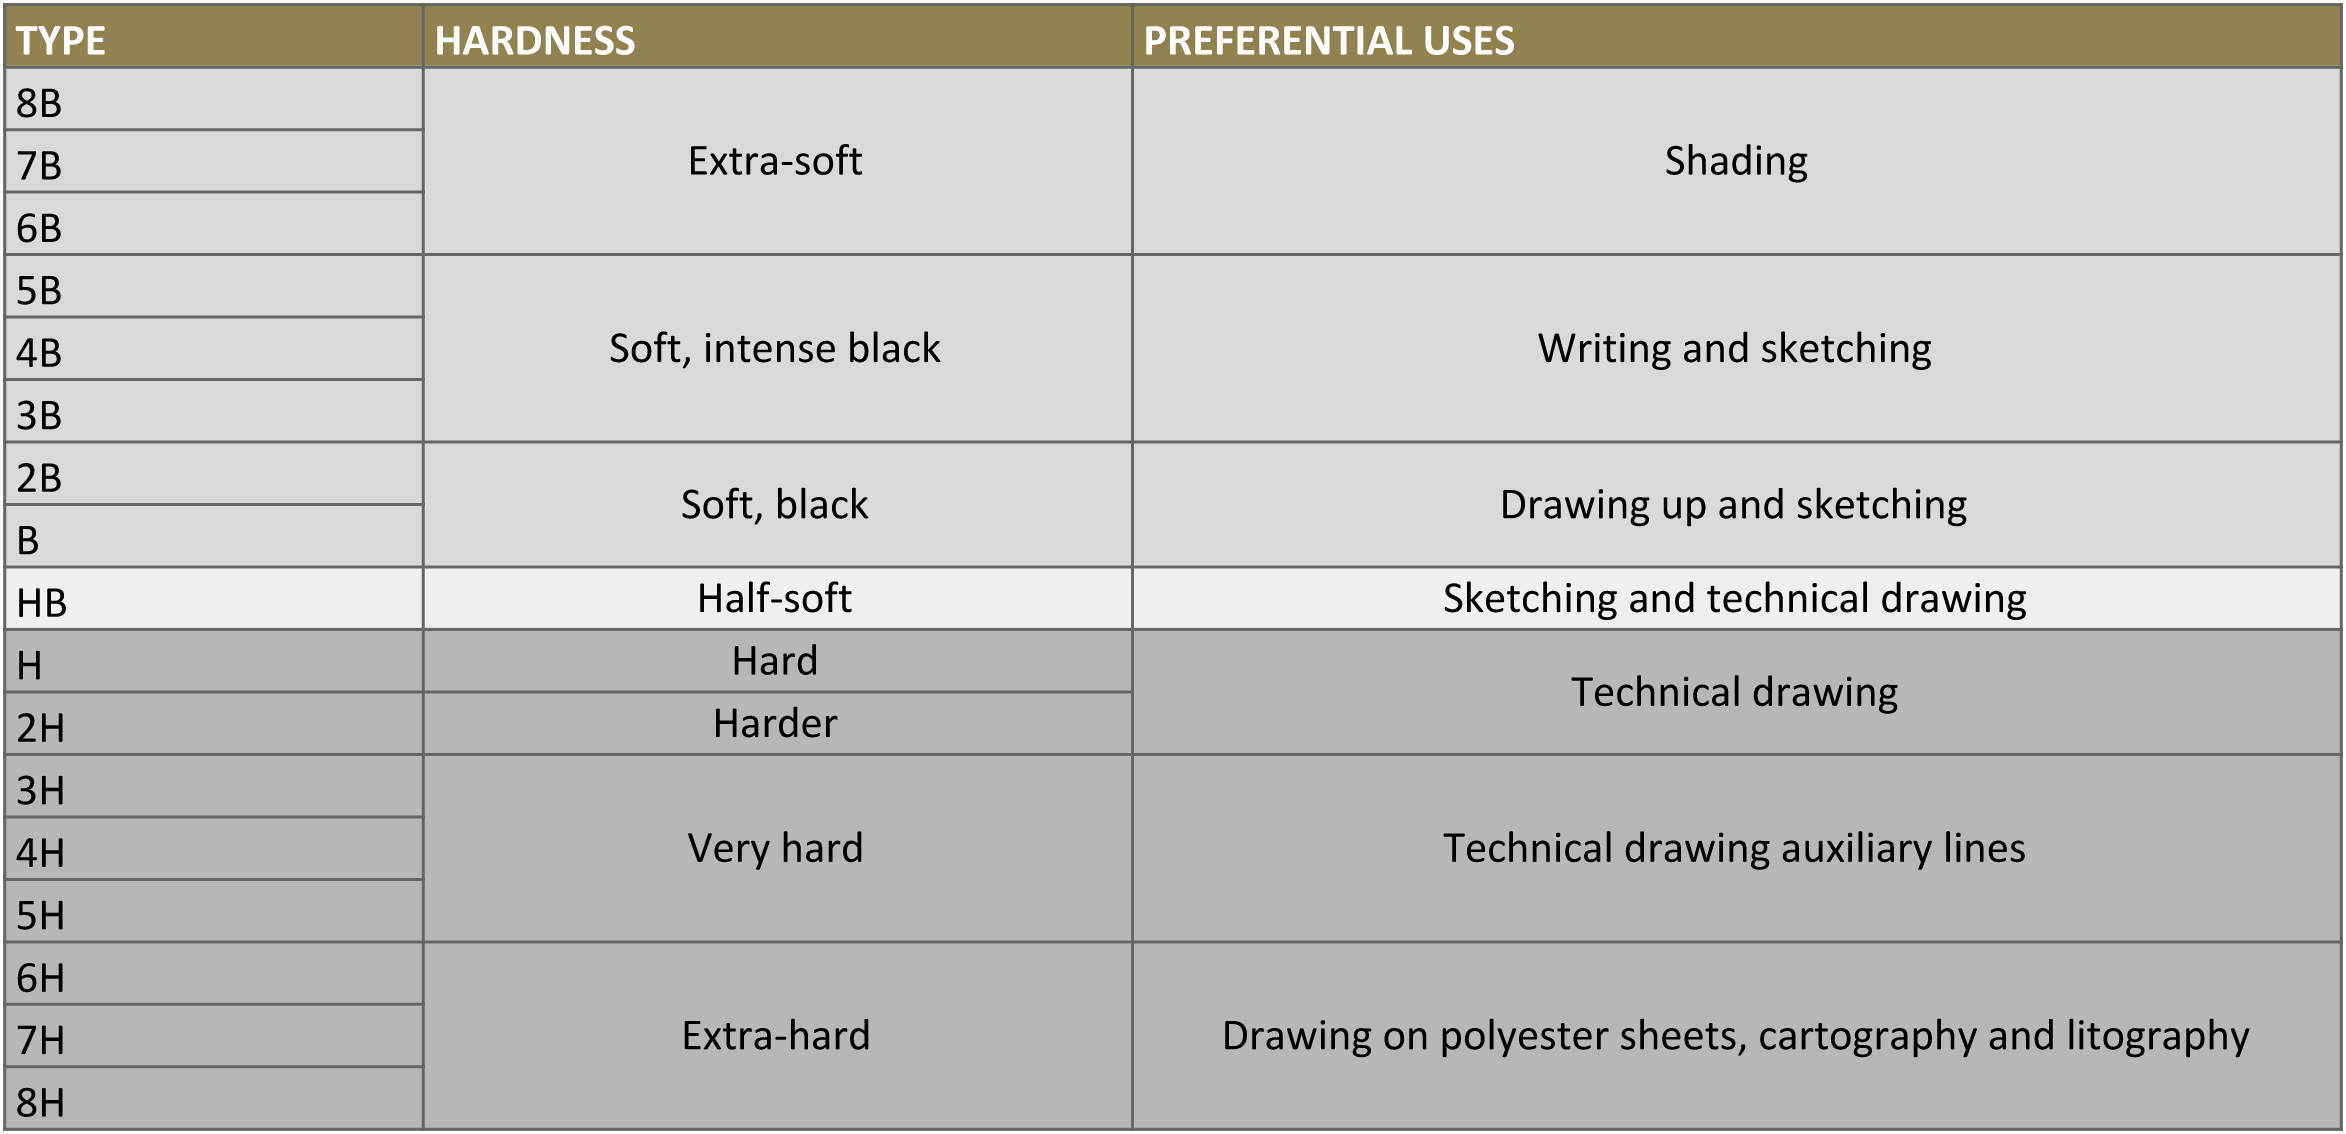 lead hardness guide chart